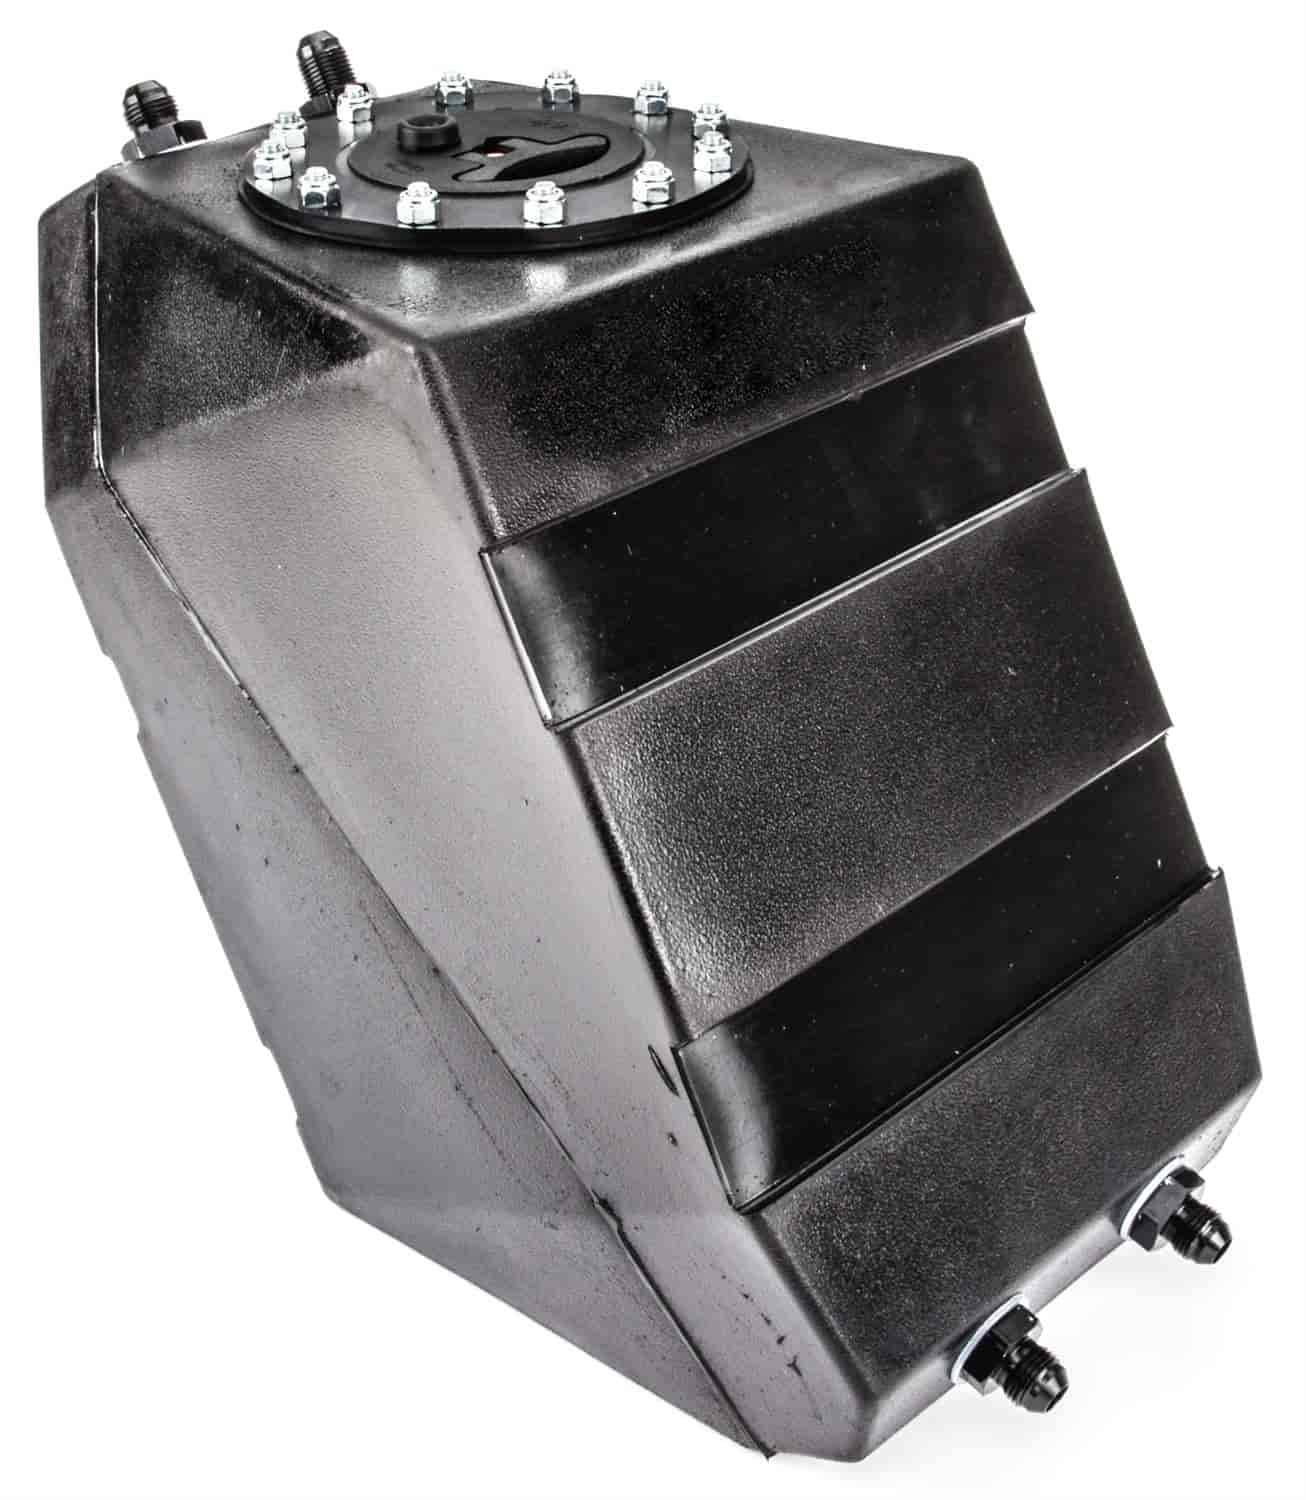 JEGS Upright Drag Race Fuel Cell Capacity: 4 Gallons